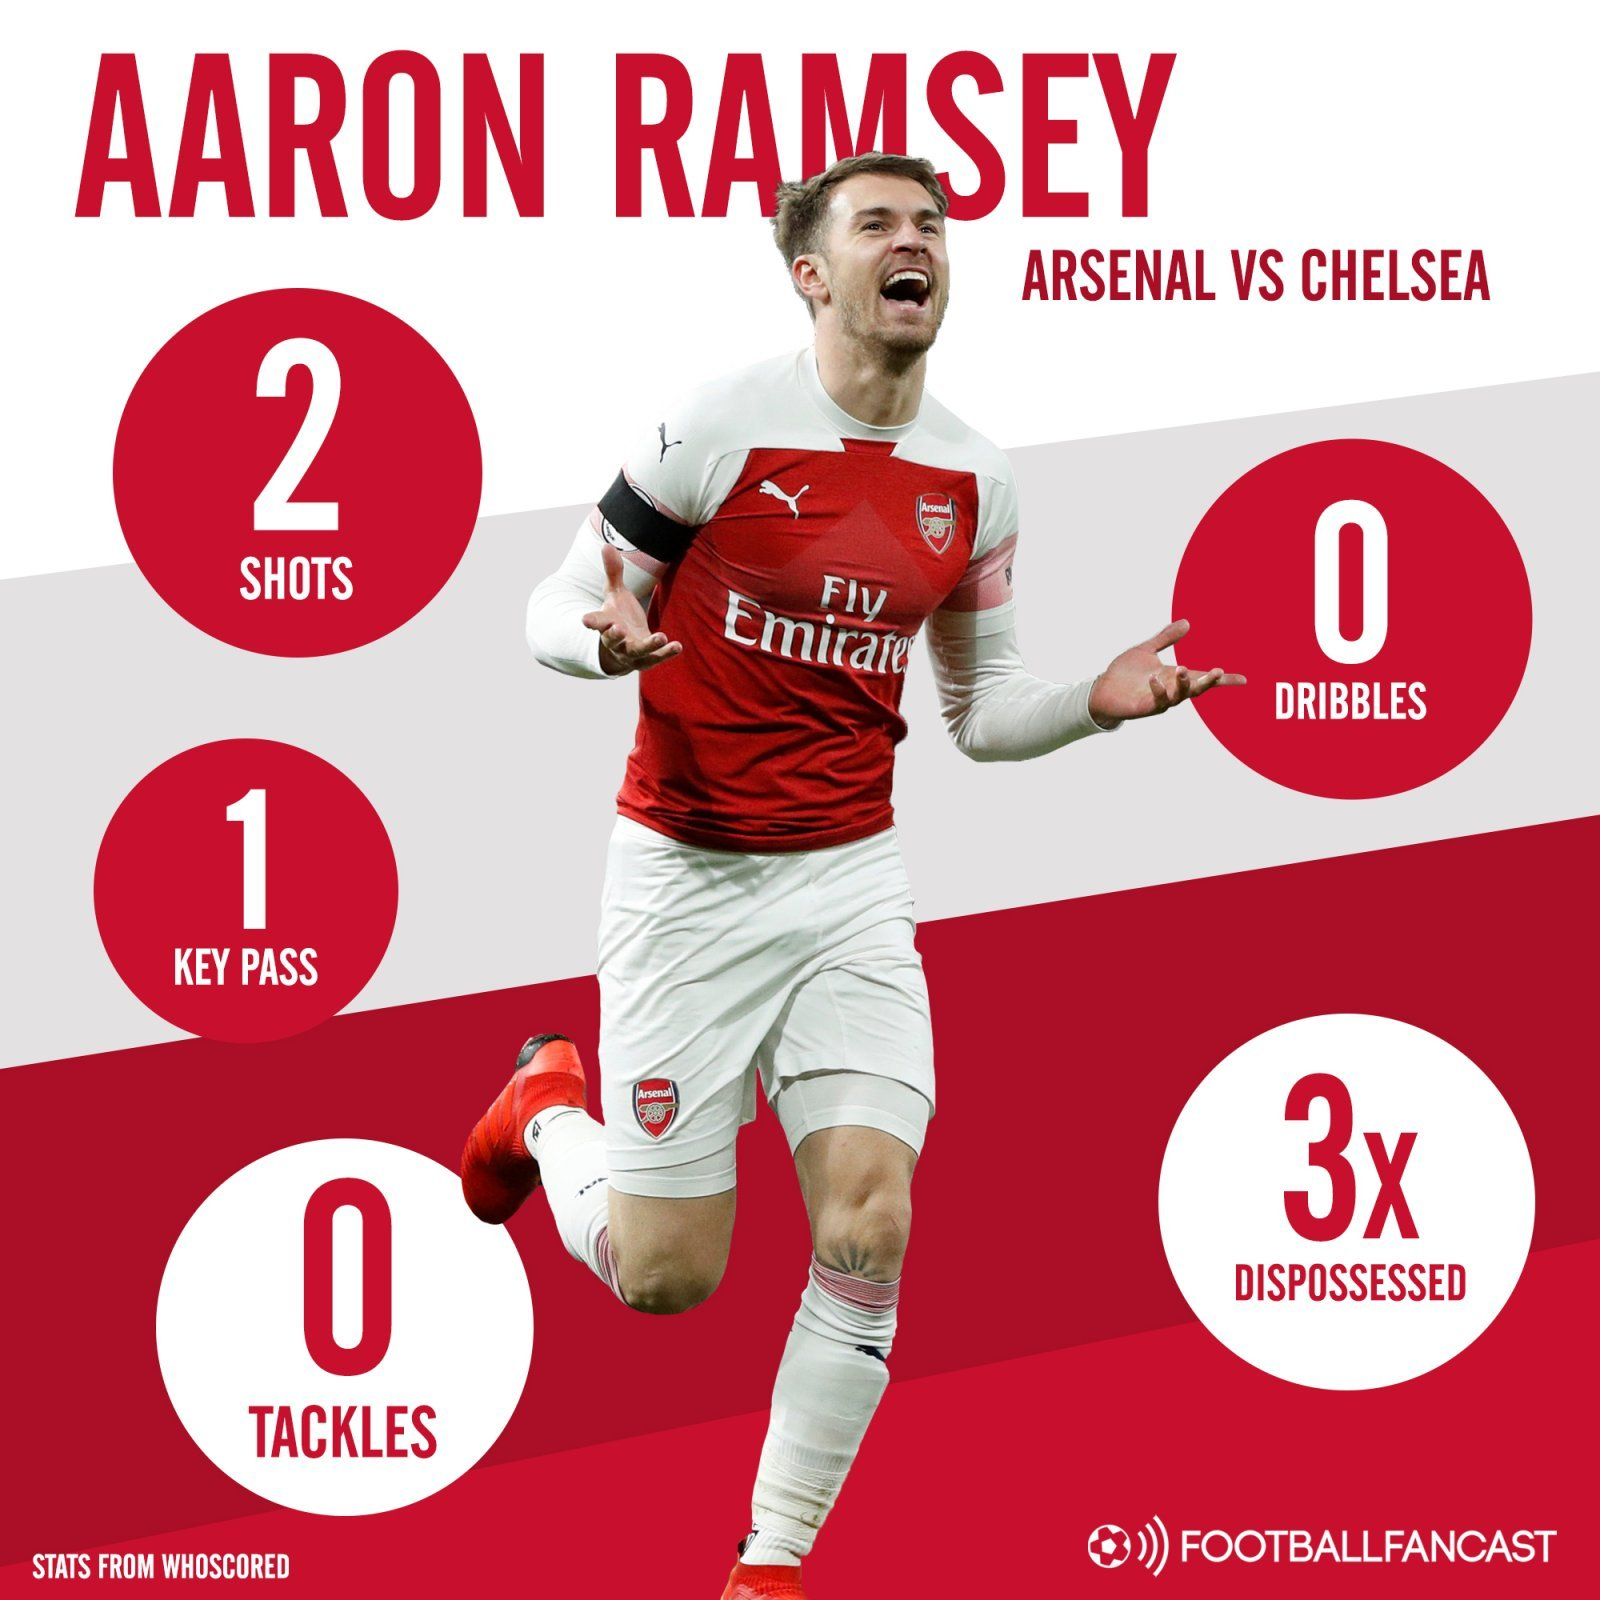 Arsenal midfielder Aaron Ramseys stats vs Chelsea - 0 tackles, 0 Dribbles: 28-year-old underwhelmed on Saturday despite Arsenal's impressive win